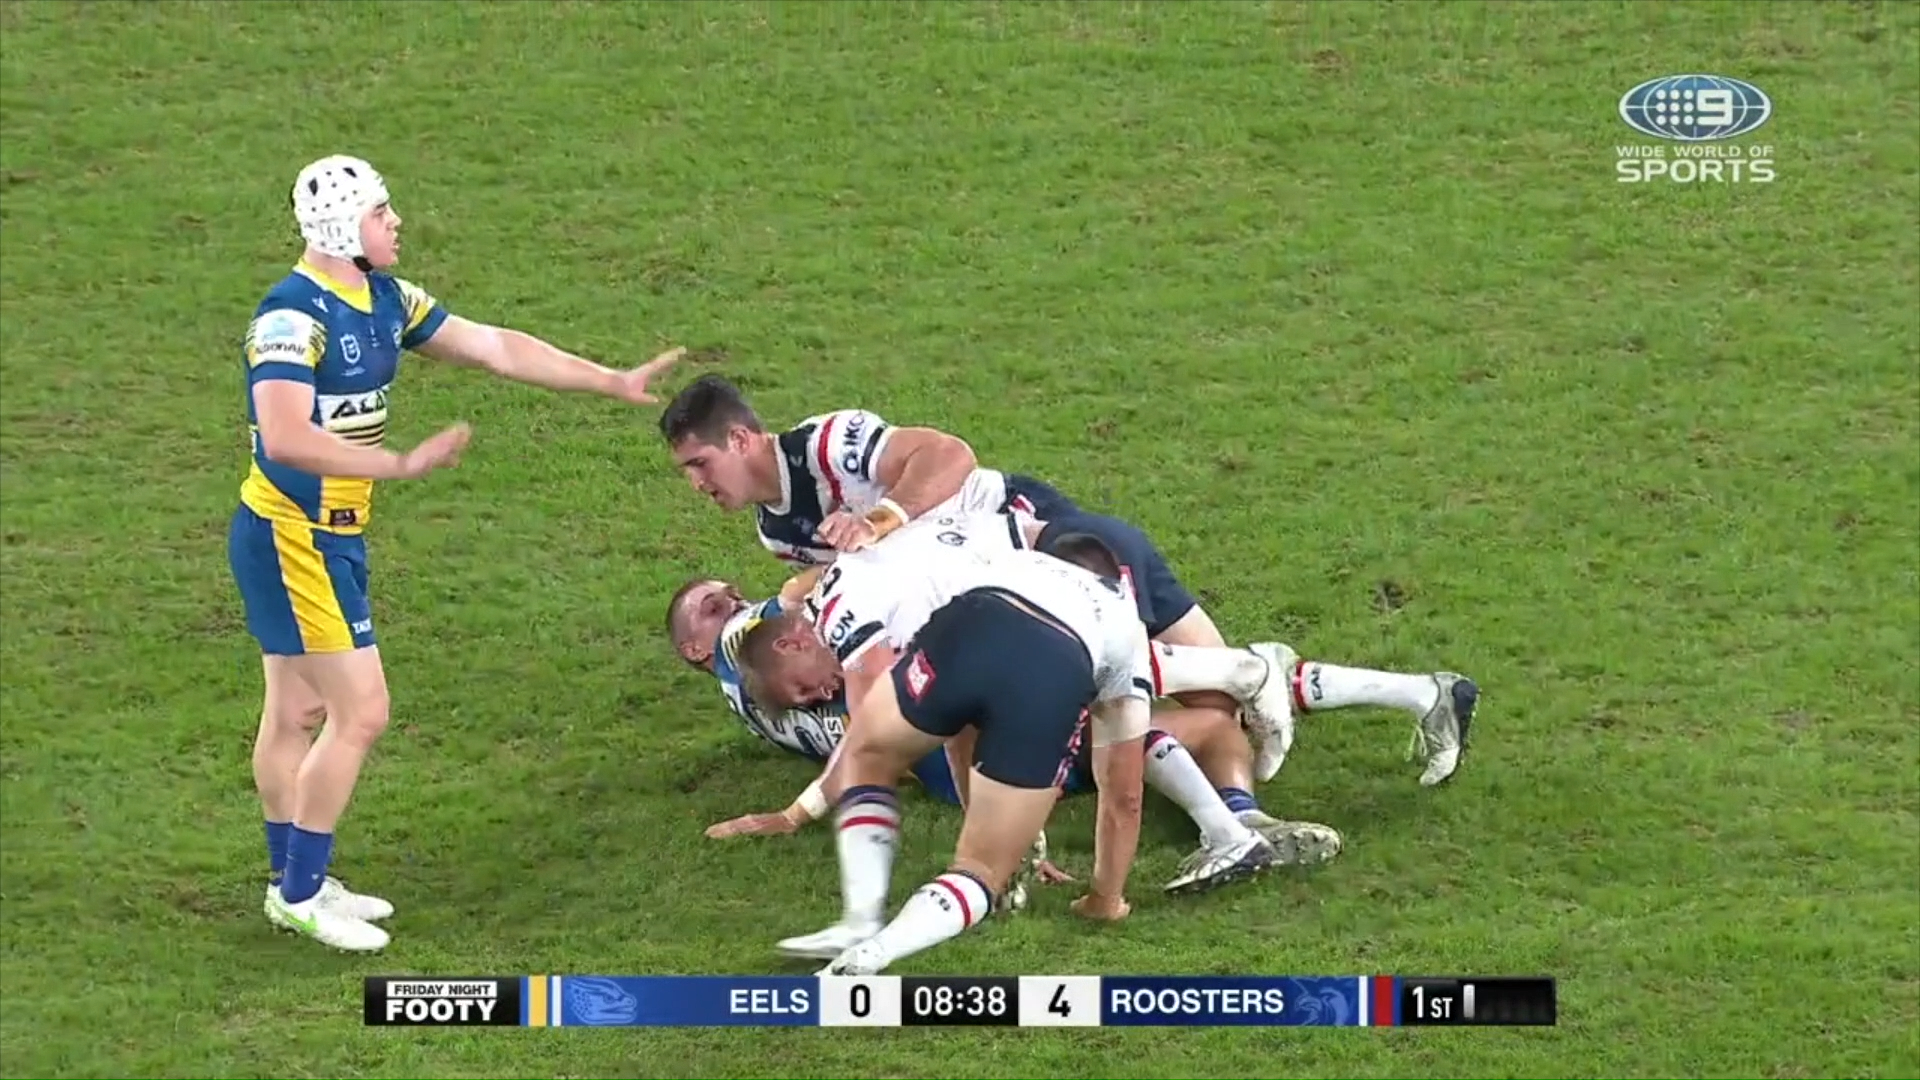 NRL Highlights: The Eels hold on against a injury riddled Roosters side - Round 9